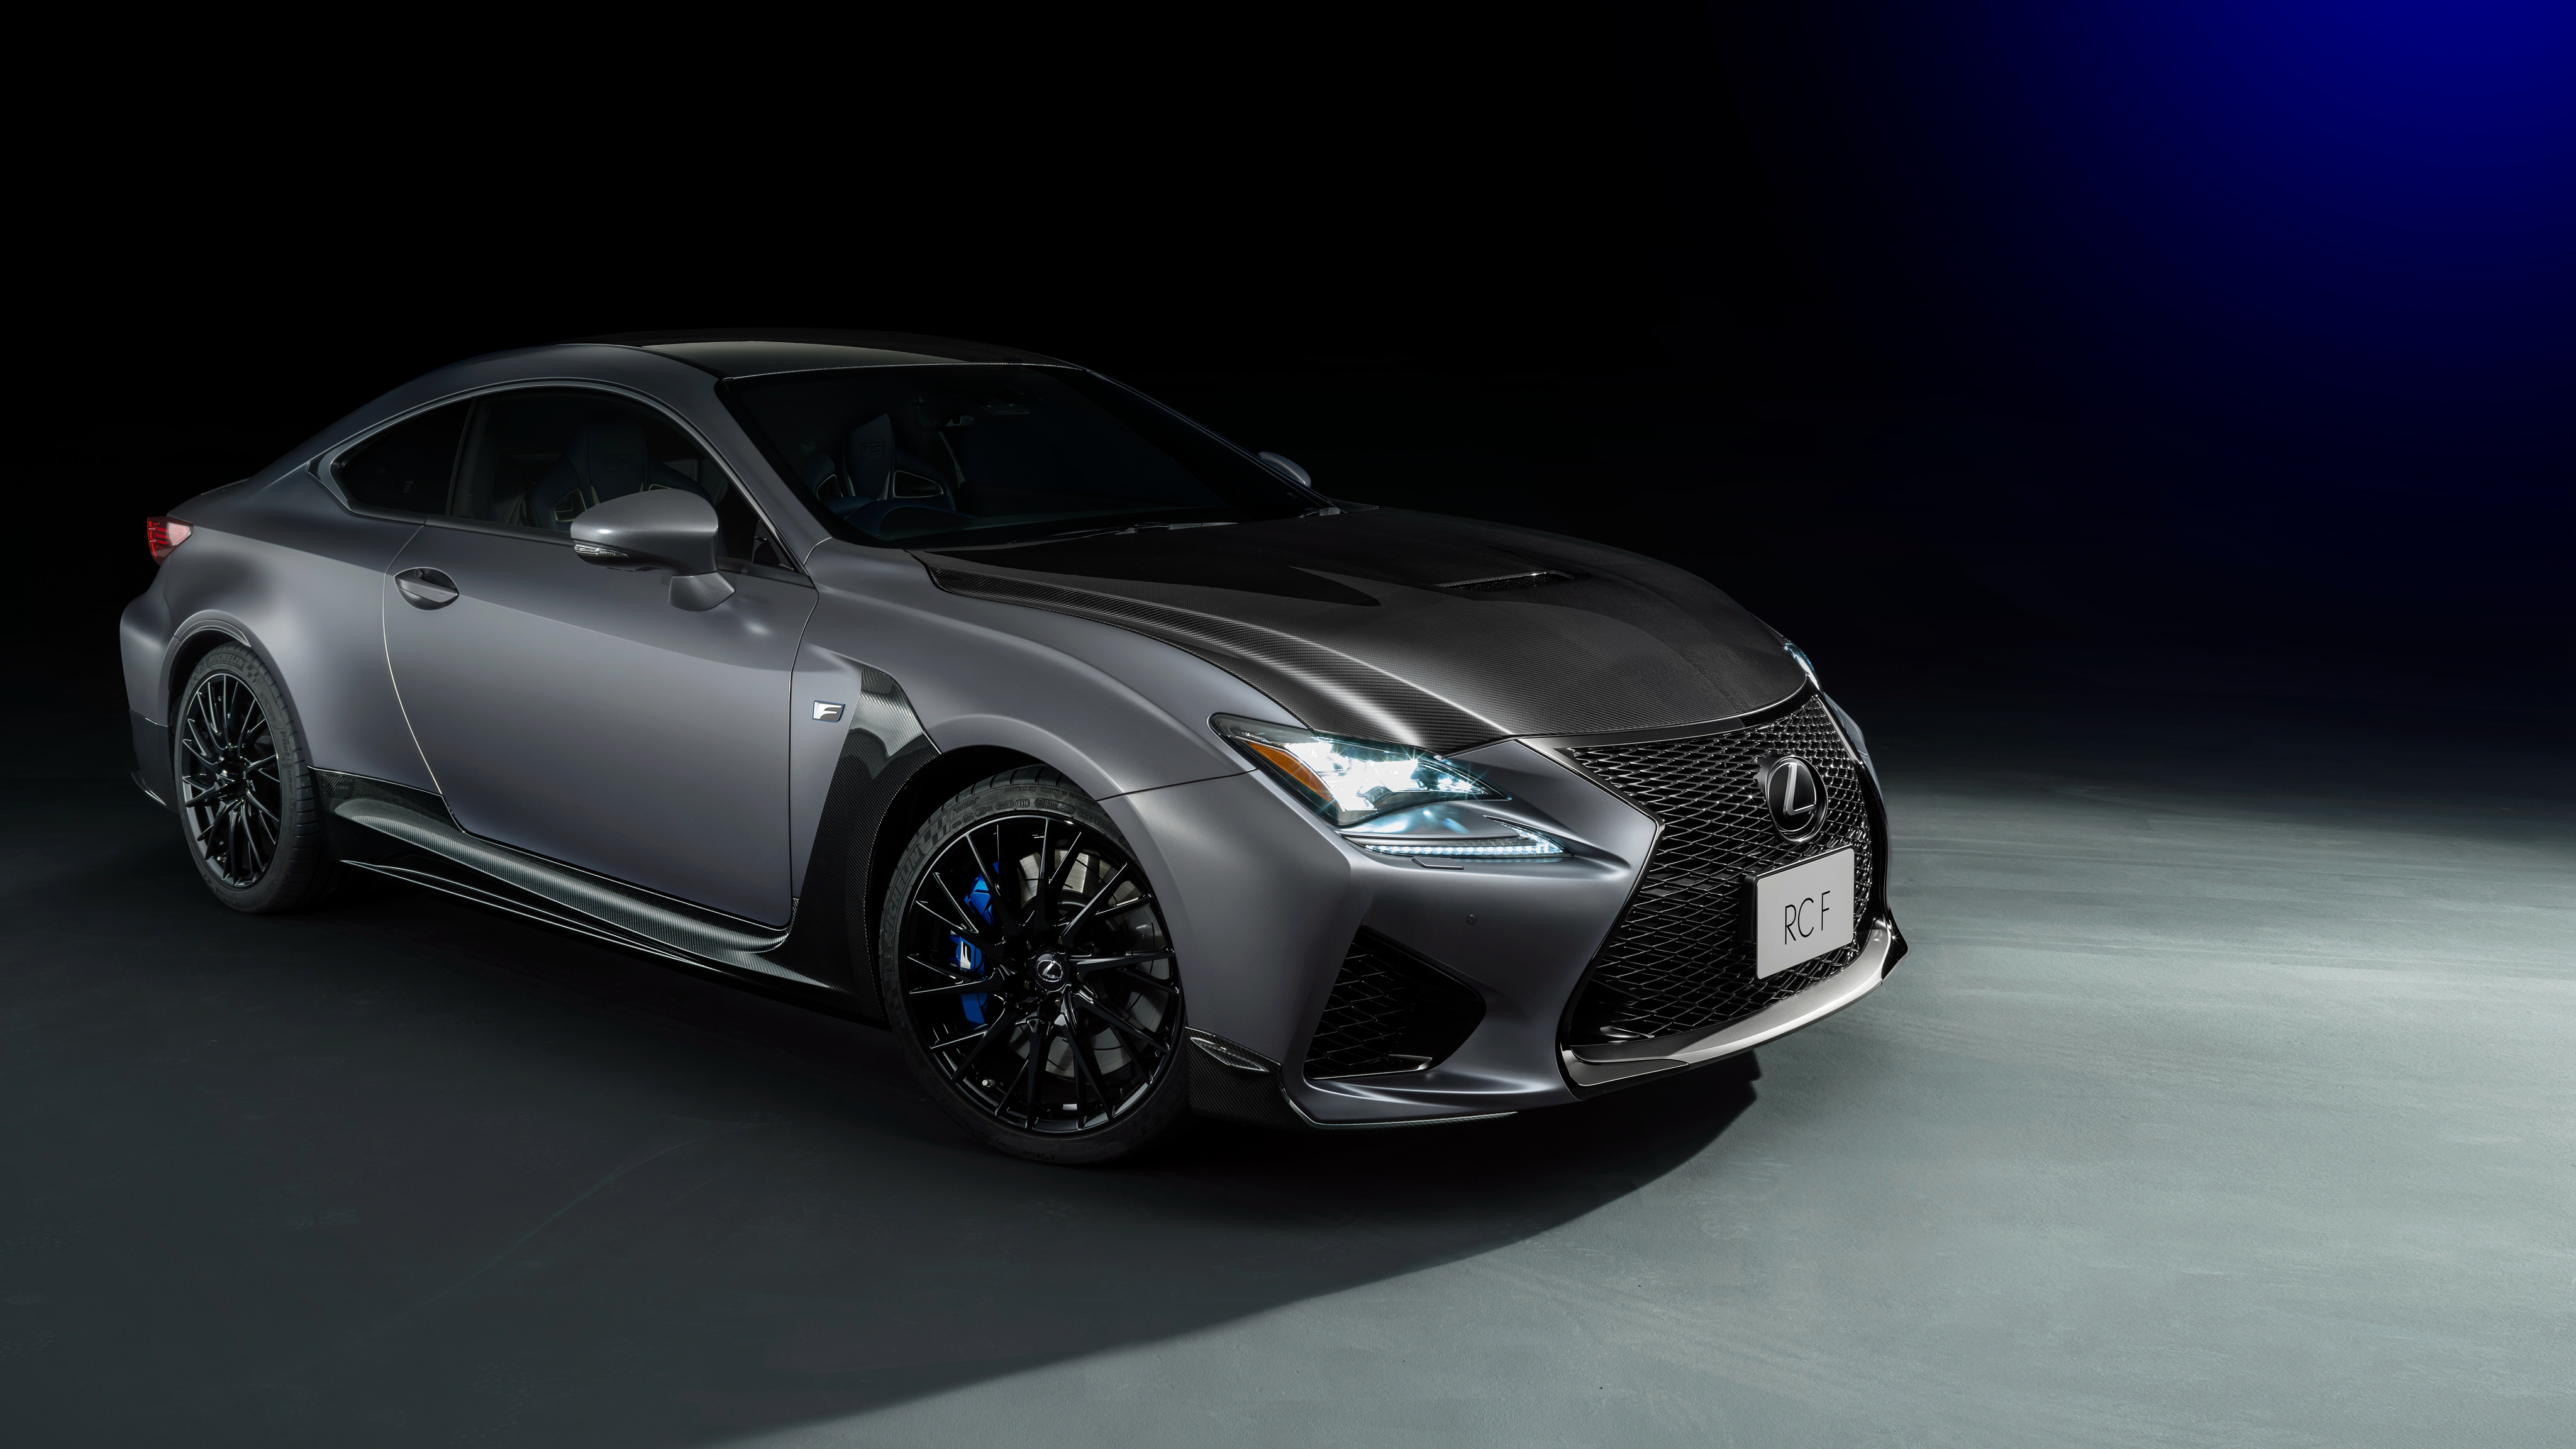 2018 Lexus RC F 10th Anniversary Limited Edition 4K Wallpapers